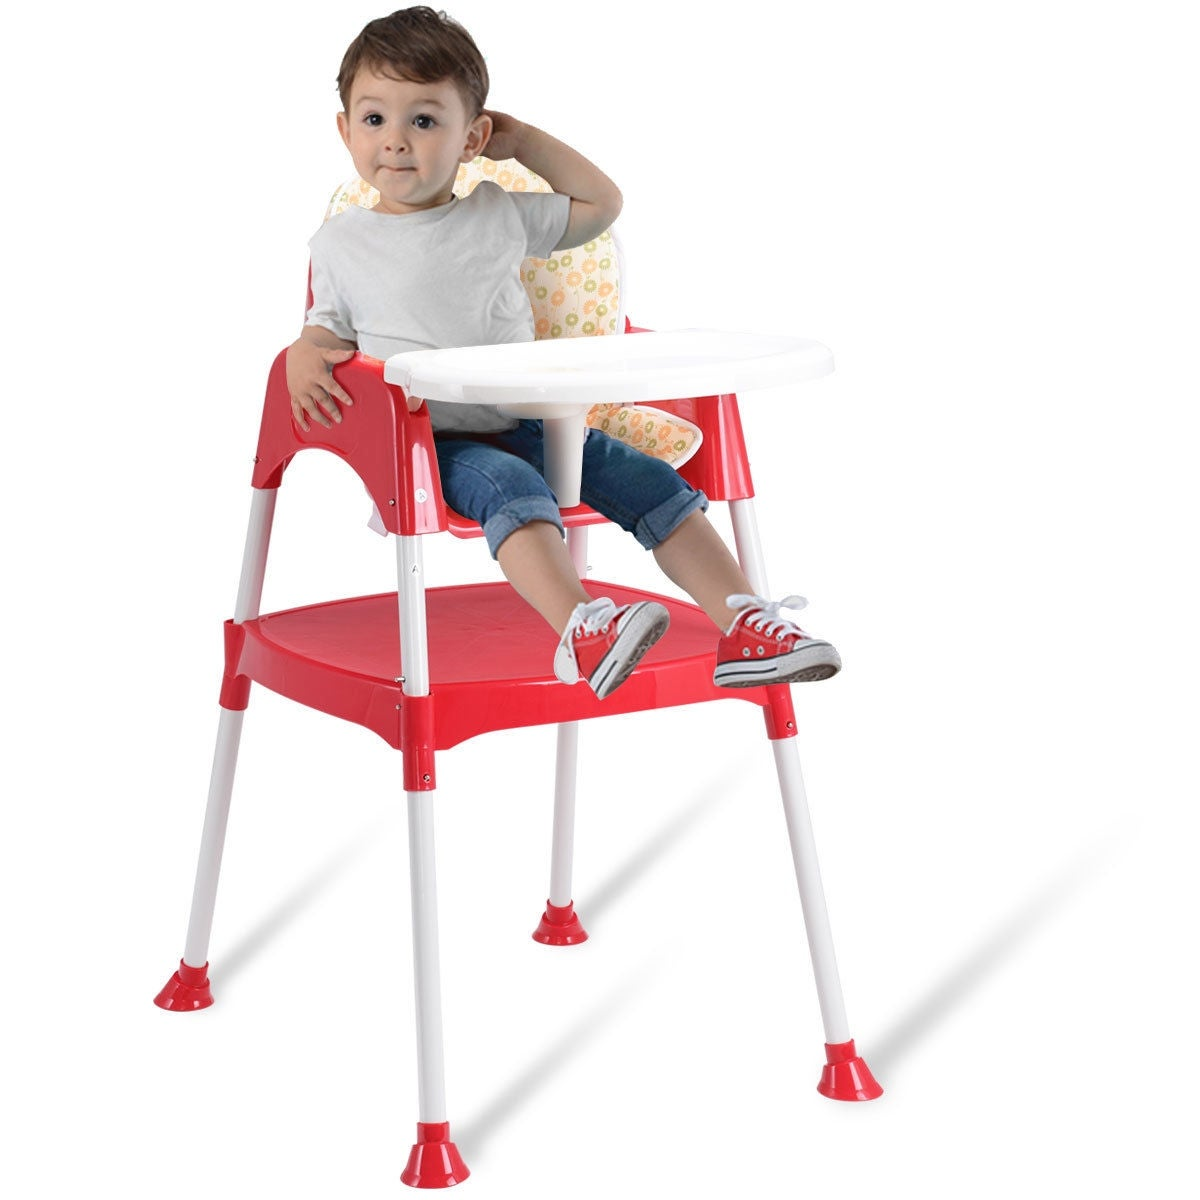 Shop Costway 3 In 1 Baby High Chair Convertible Table Seat Booster